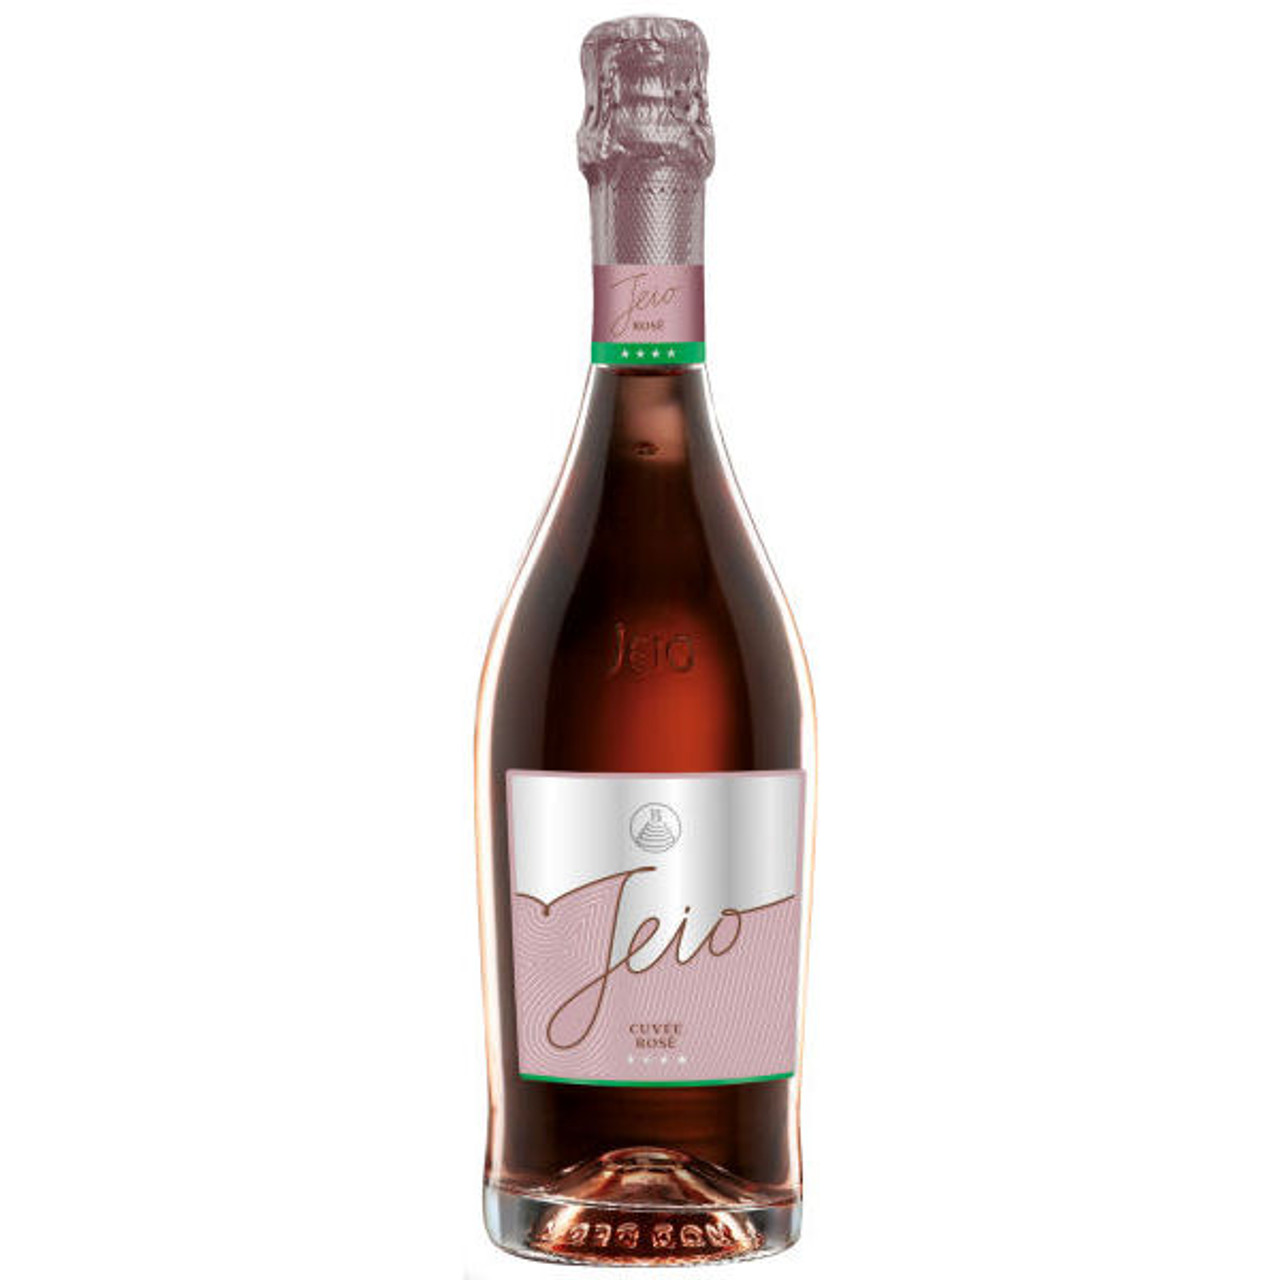 12 Bottle Case Bisol Jeio Prosecco Rose NV (Italy) w/ Free Shipping